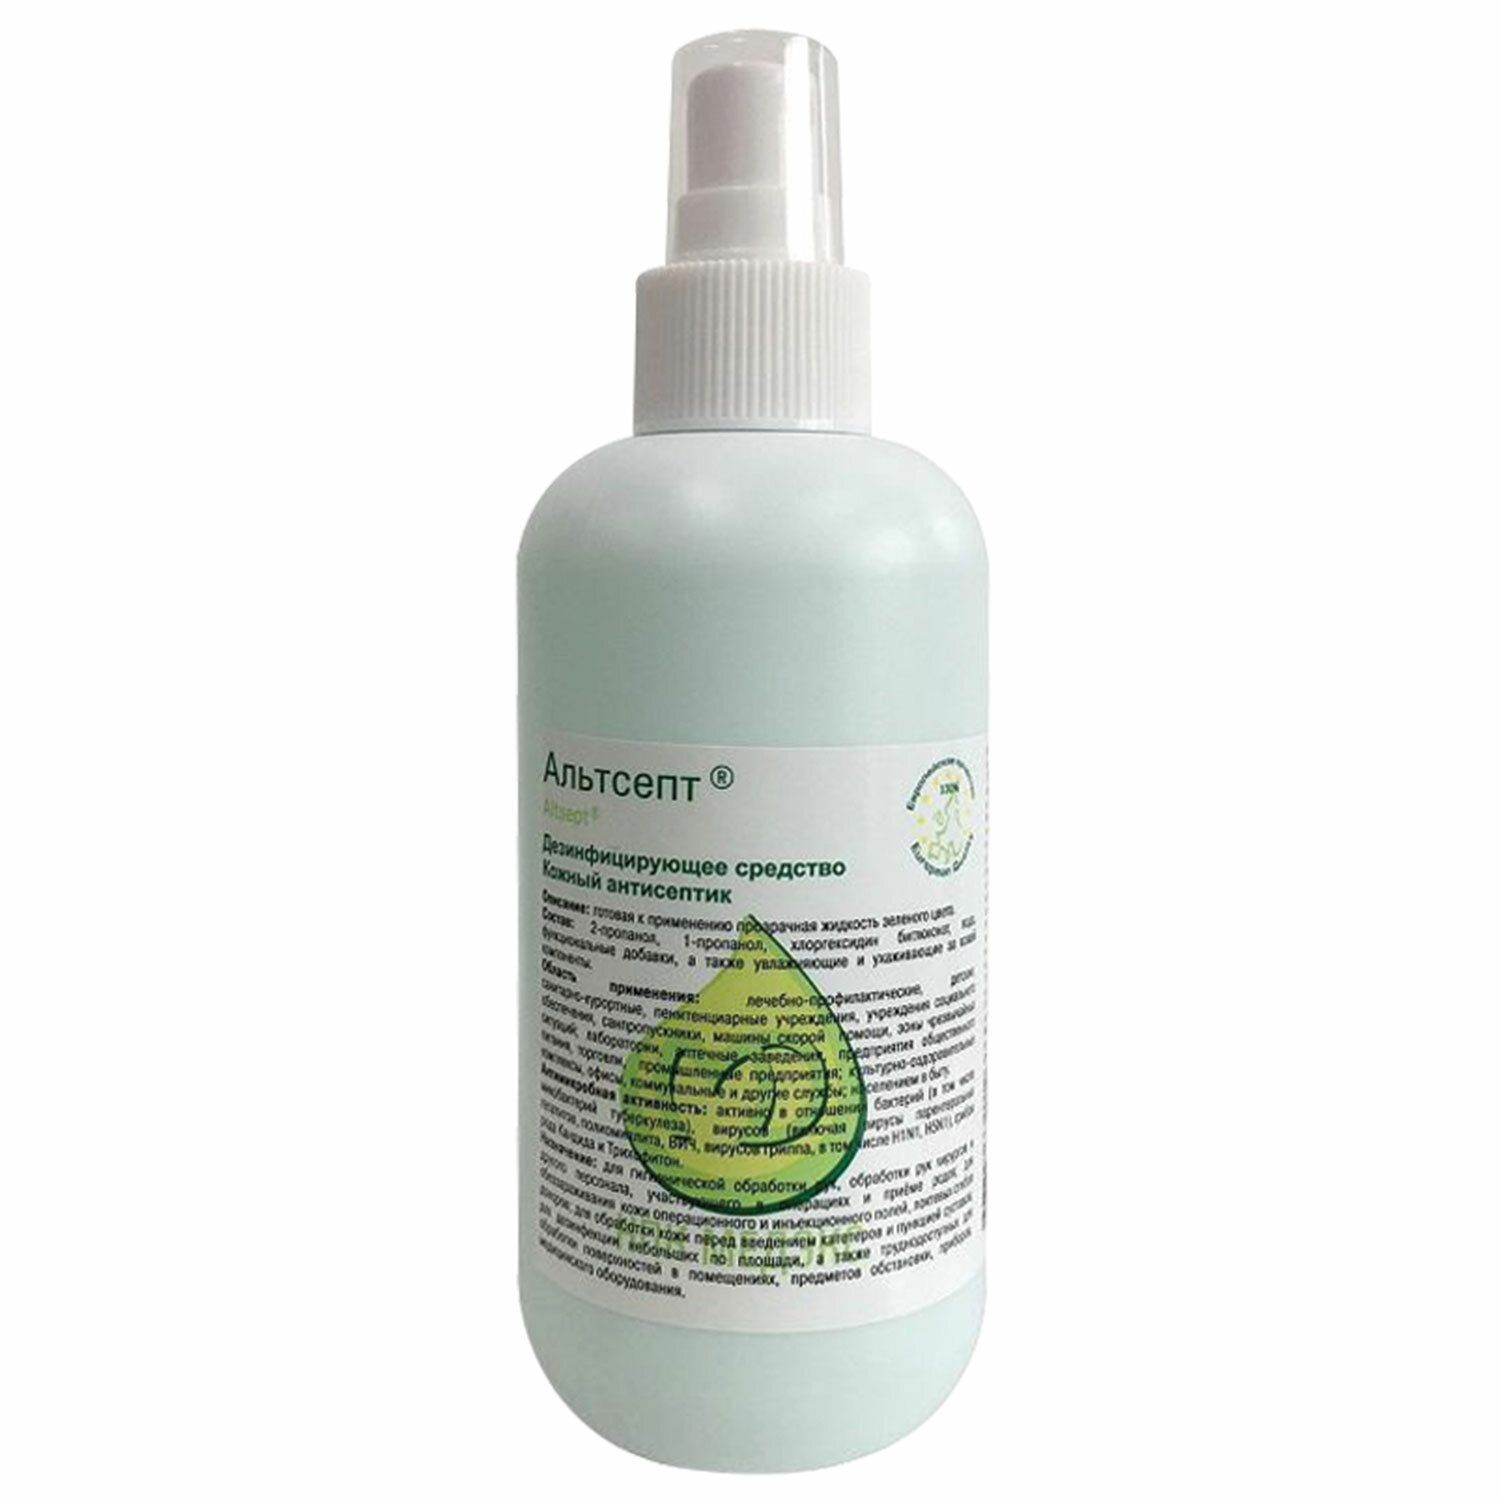 ALTSEPT / Antiseptic, skin disinfecting alcohol-containing 70% ready-made solution, spray, 200 ml